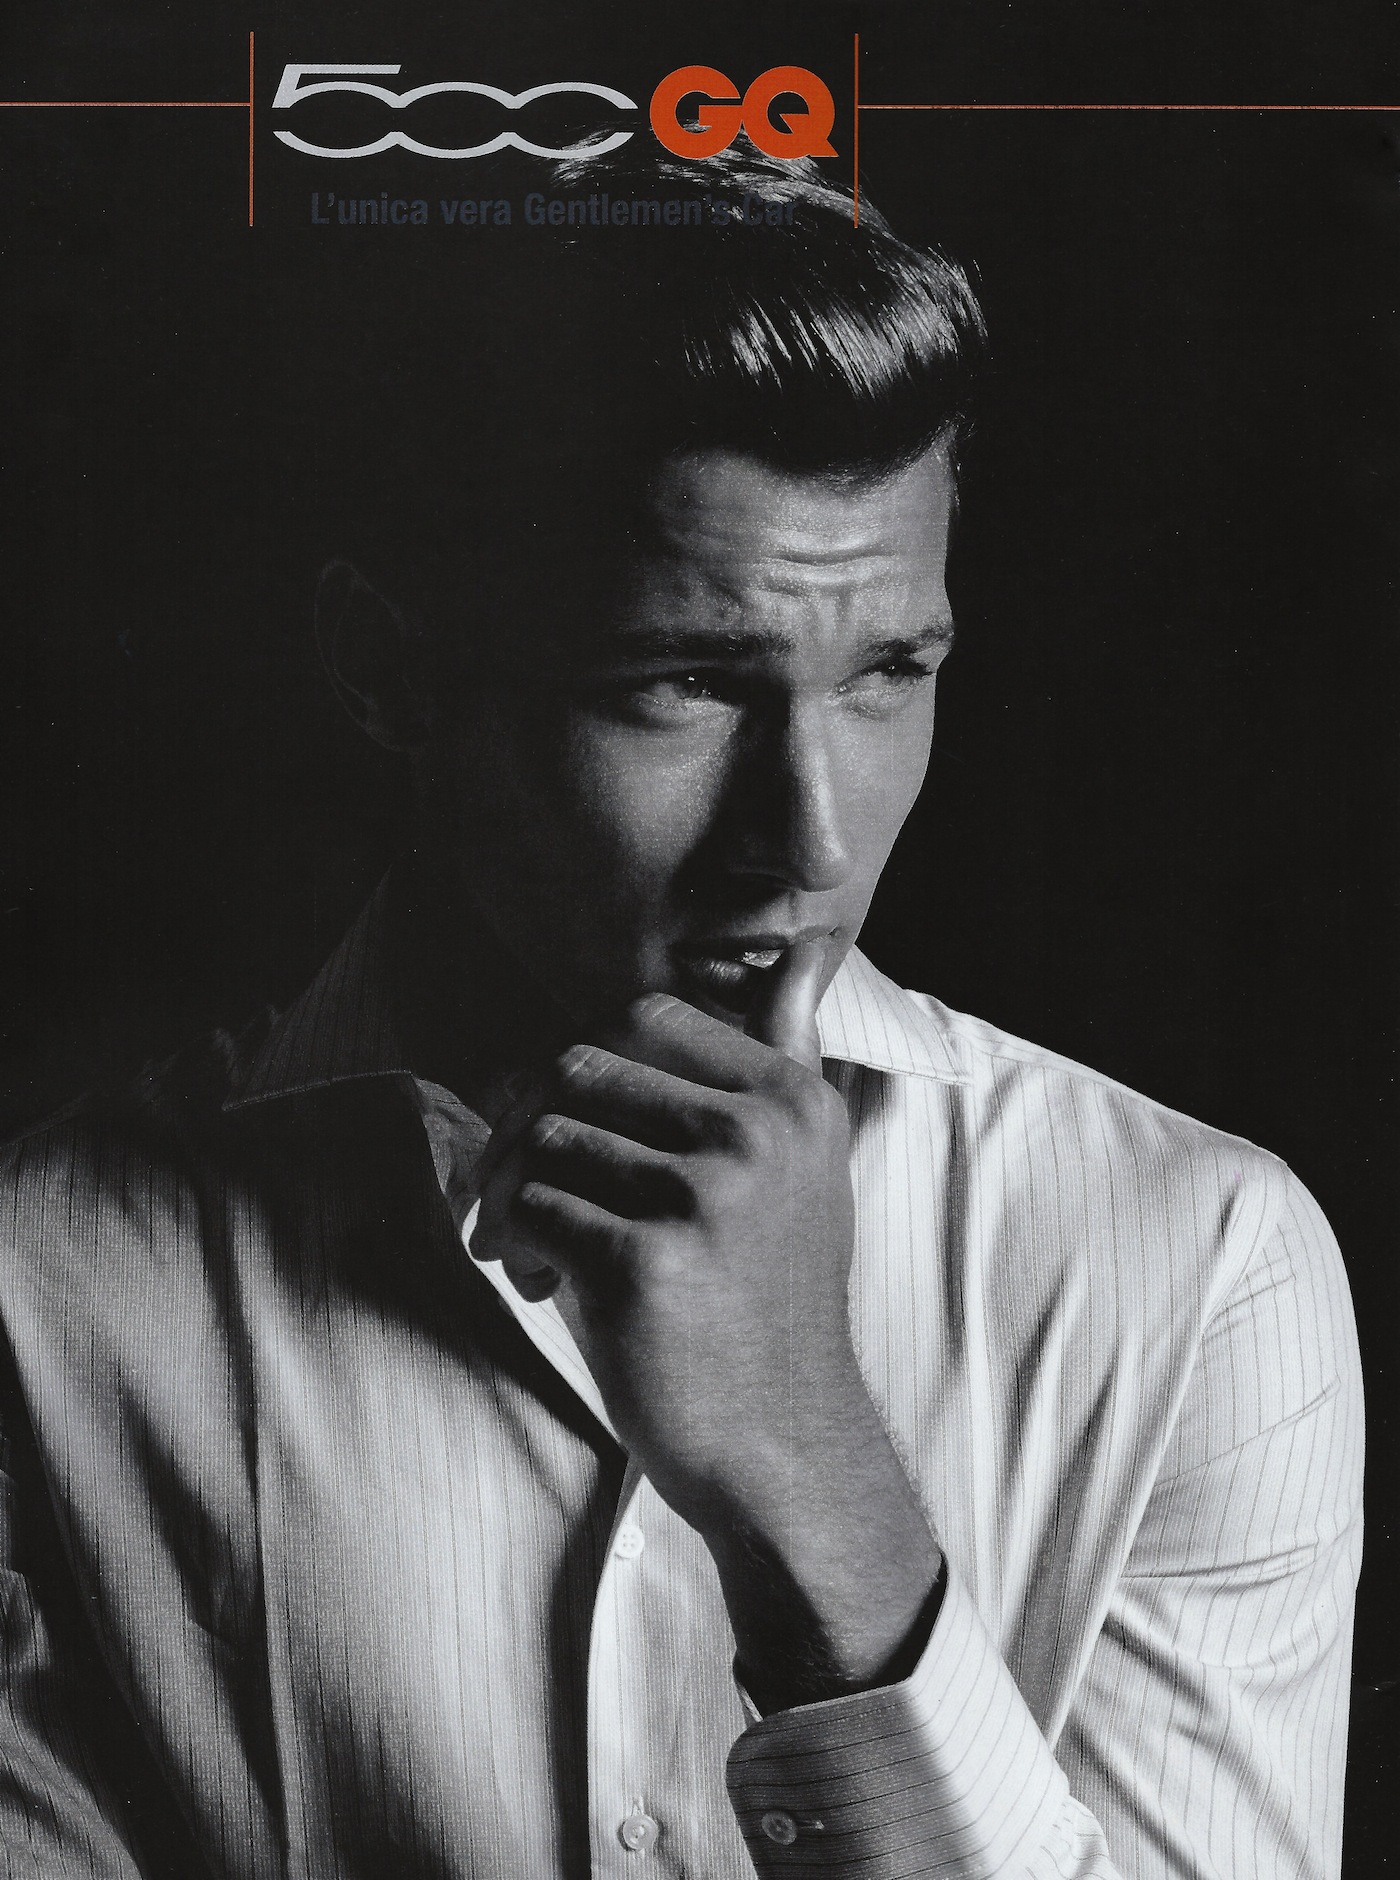 Model Kacey Carrig Introduces the FIAT 500 GQ for Italian GQ